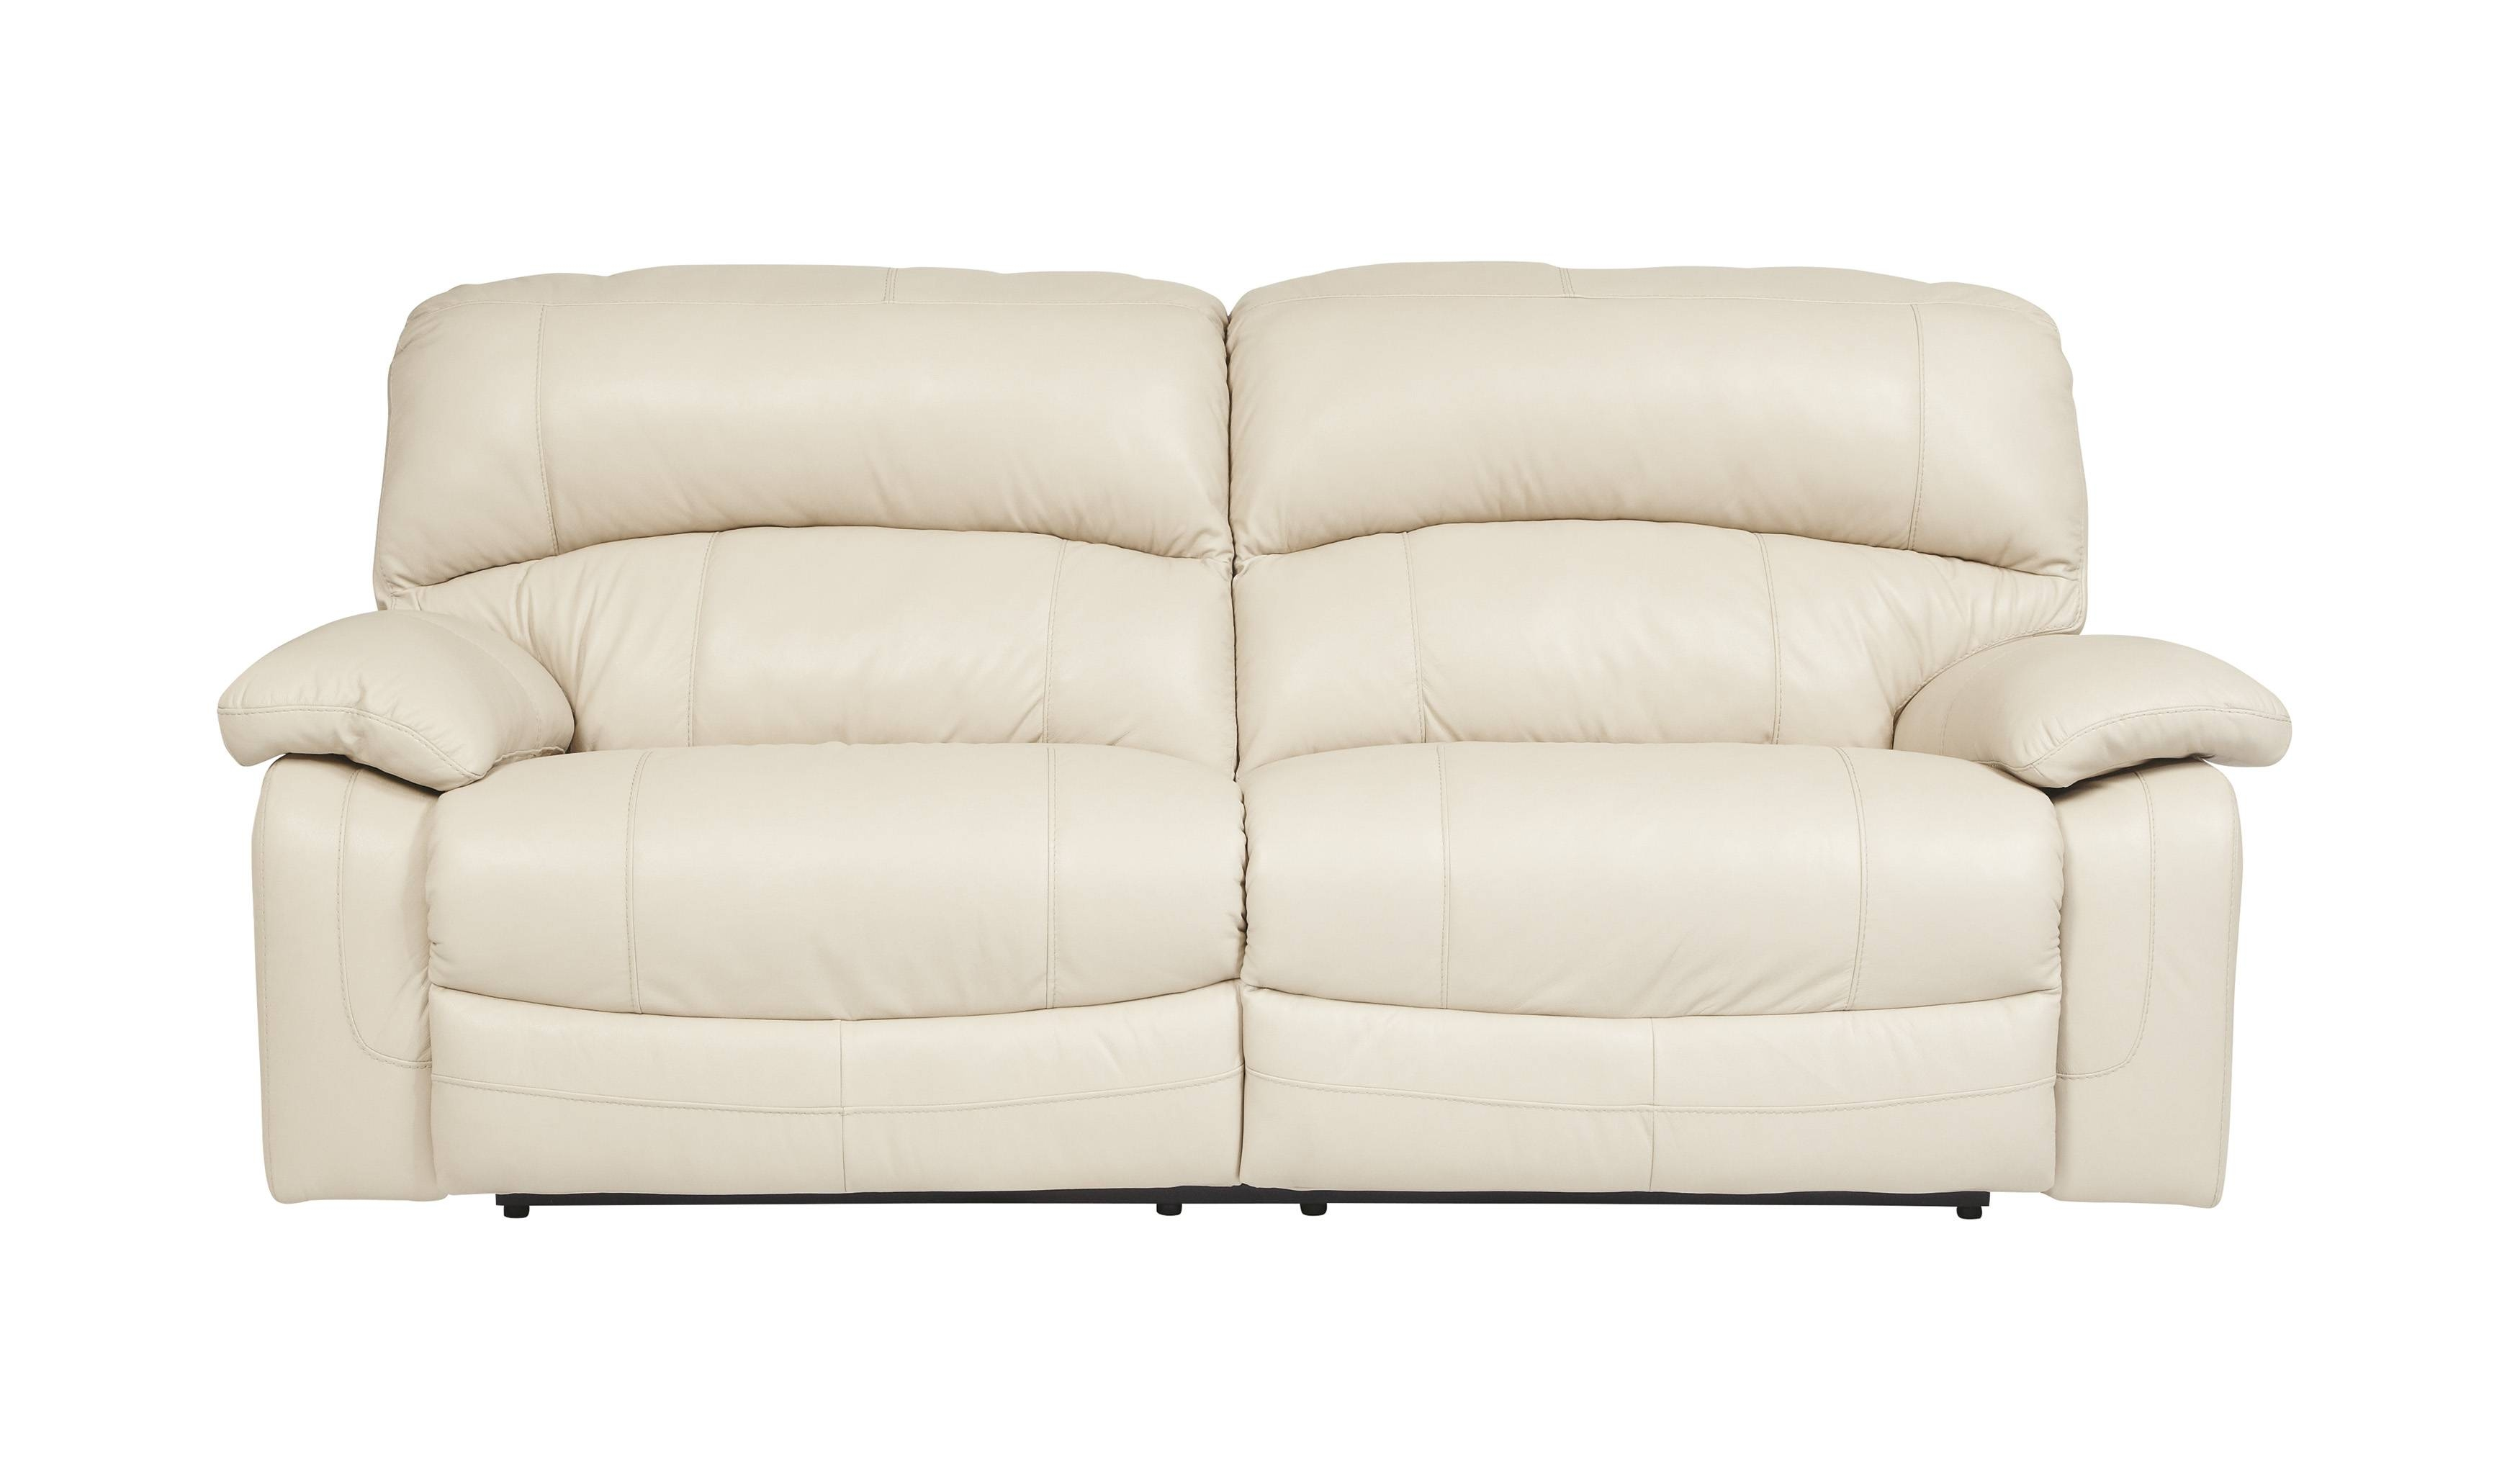 Inspirations White Leather Recliner Sofa And White Recliner Regarding 2 Seater Recliner Leather Sofas (View 19 of 30)